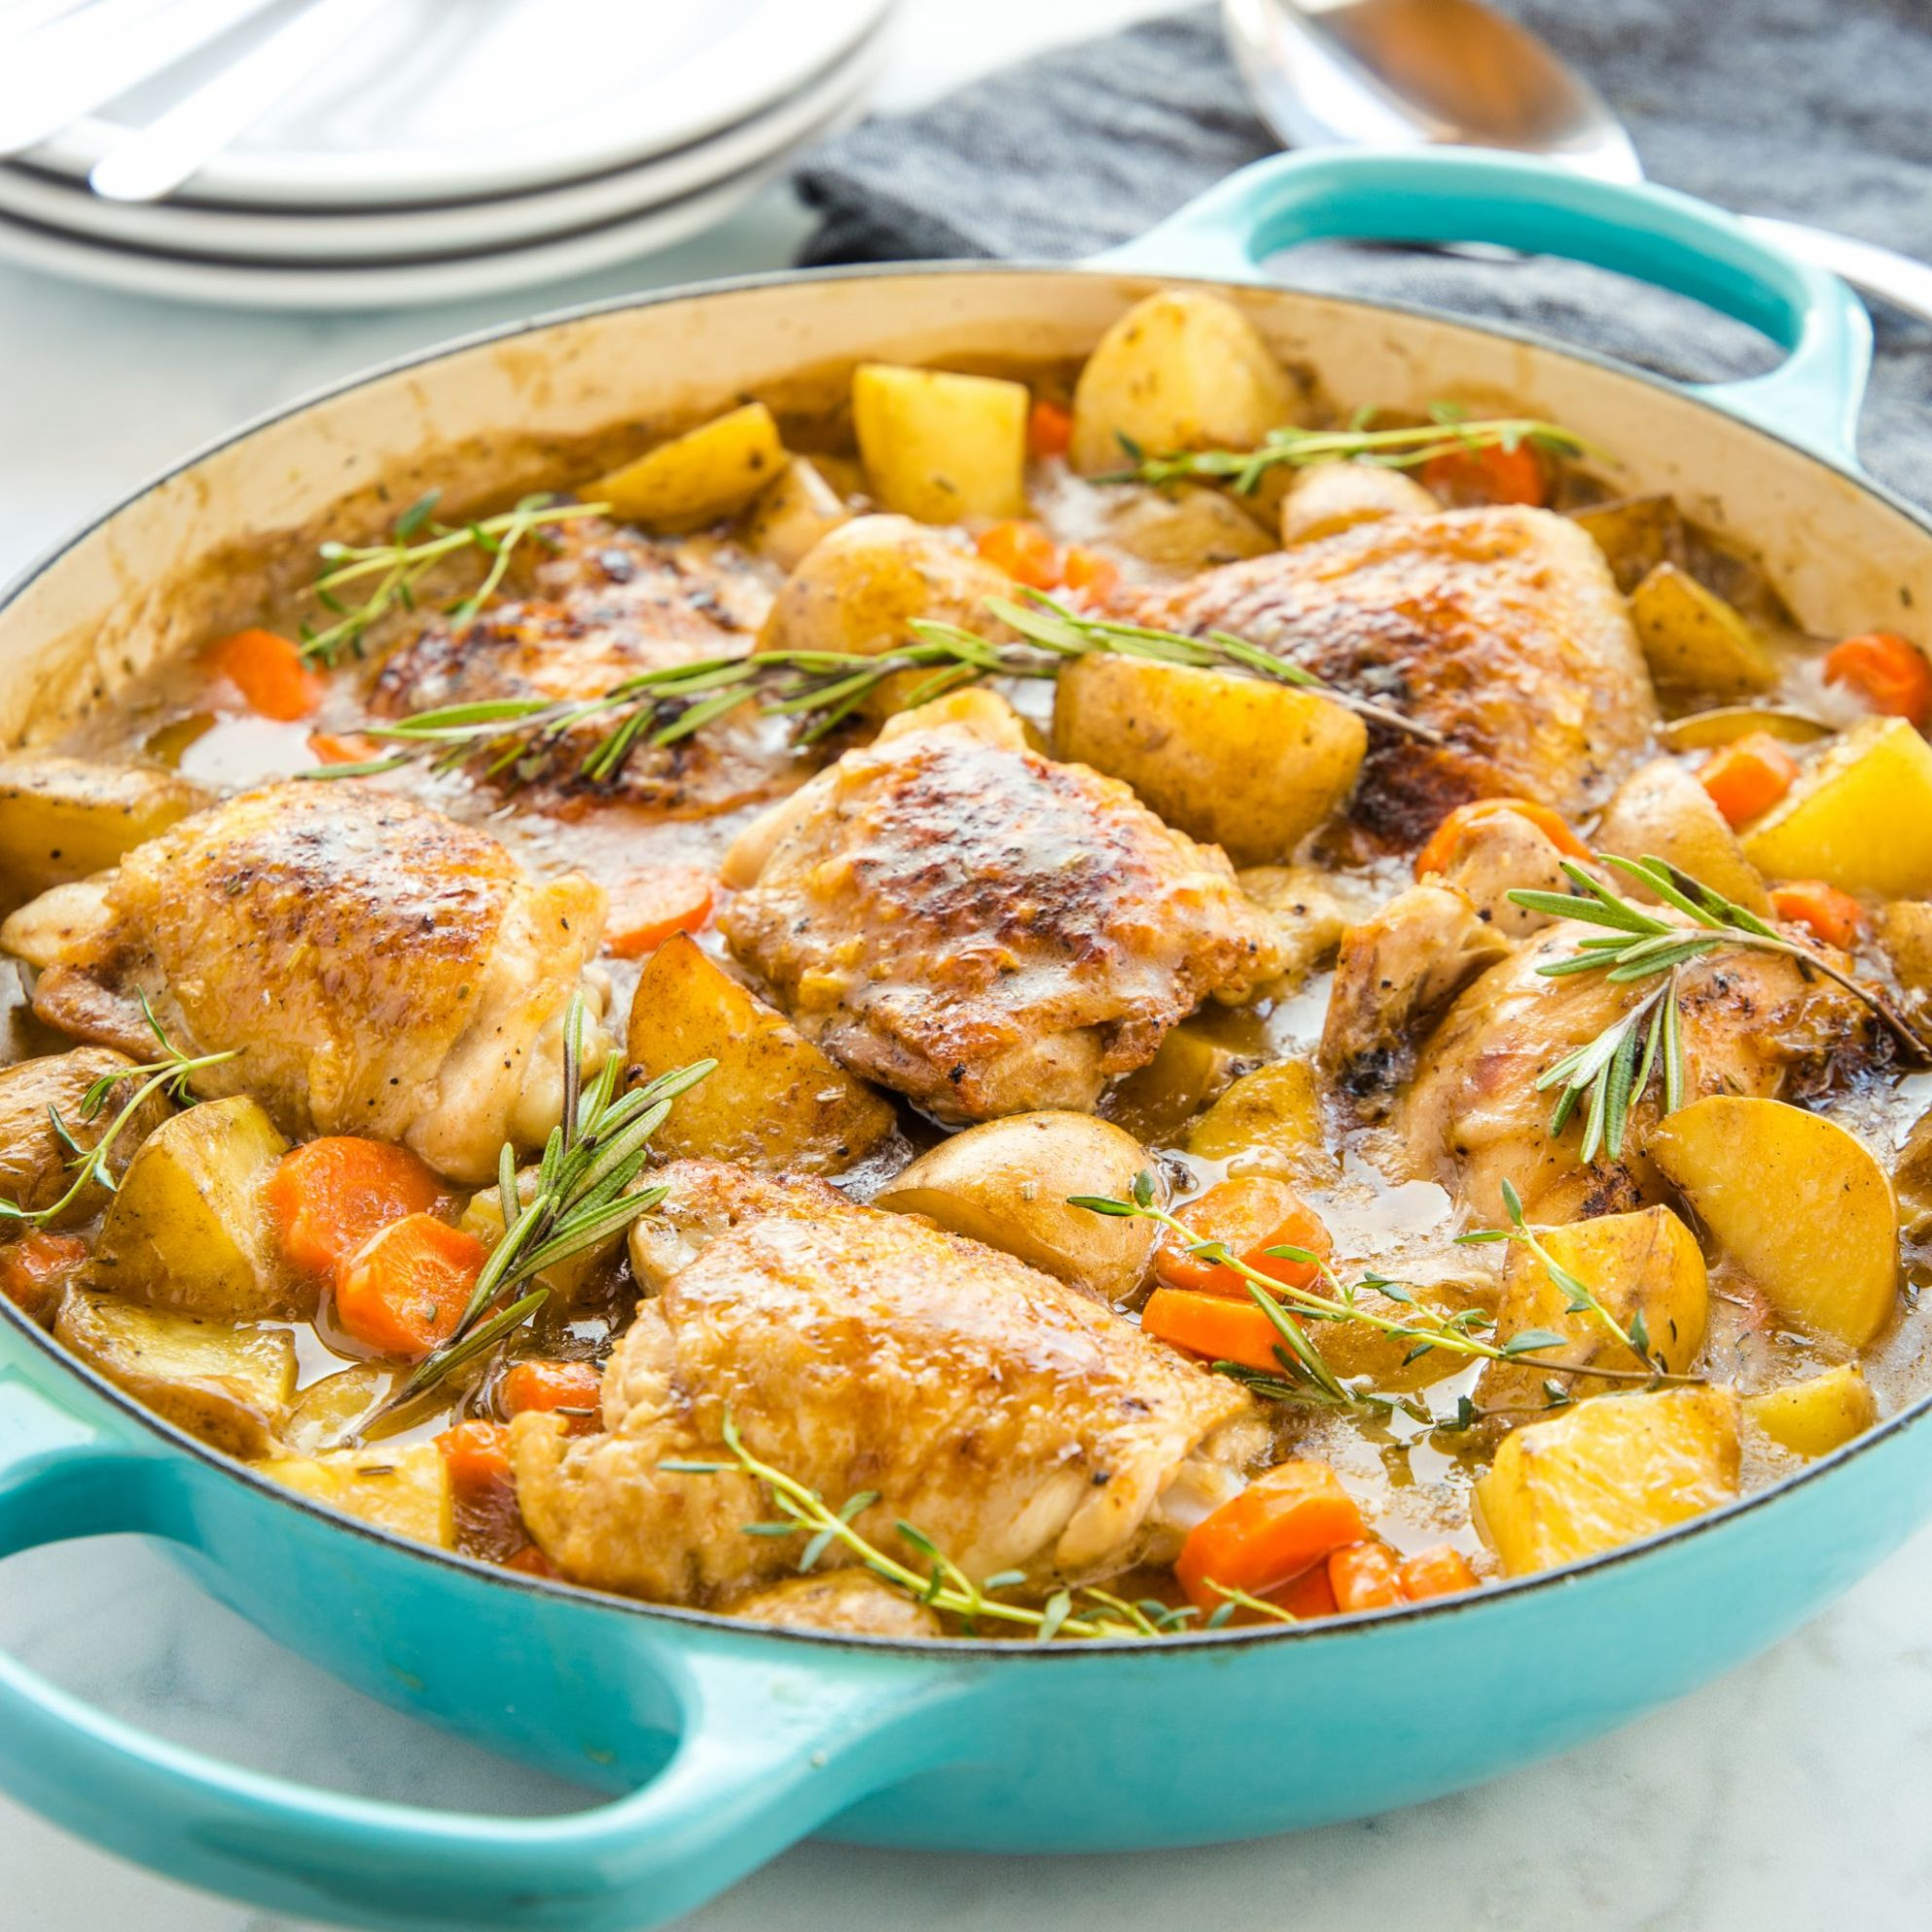 Easy One Pot Roasted Chicken Dinner - Recipe Chicken Breast One Pot